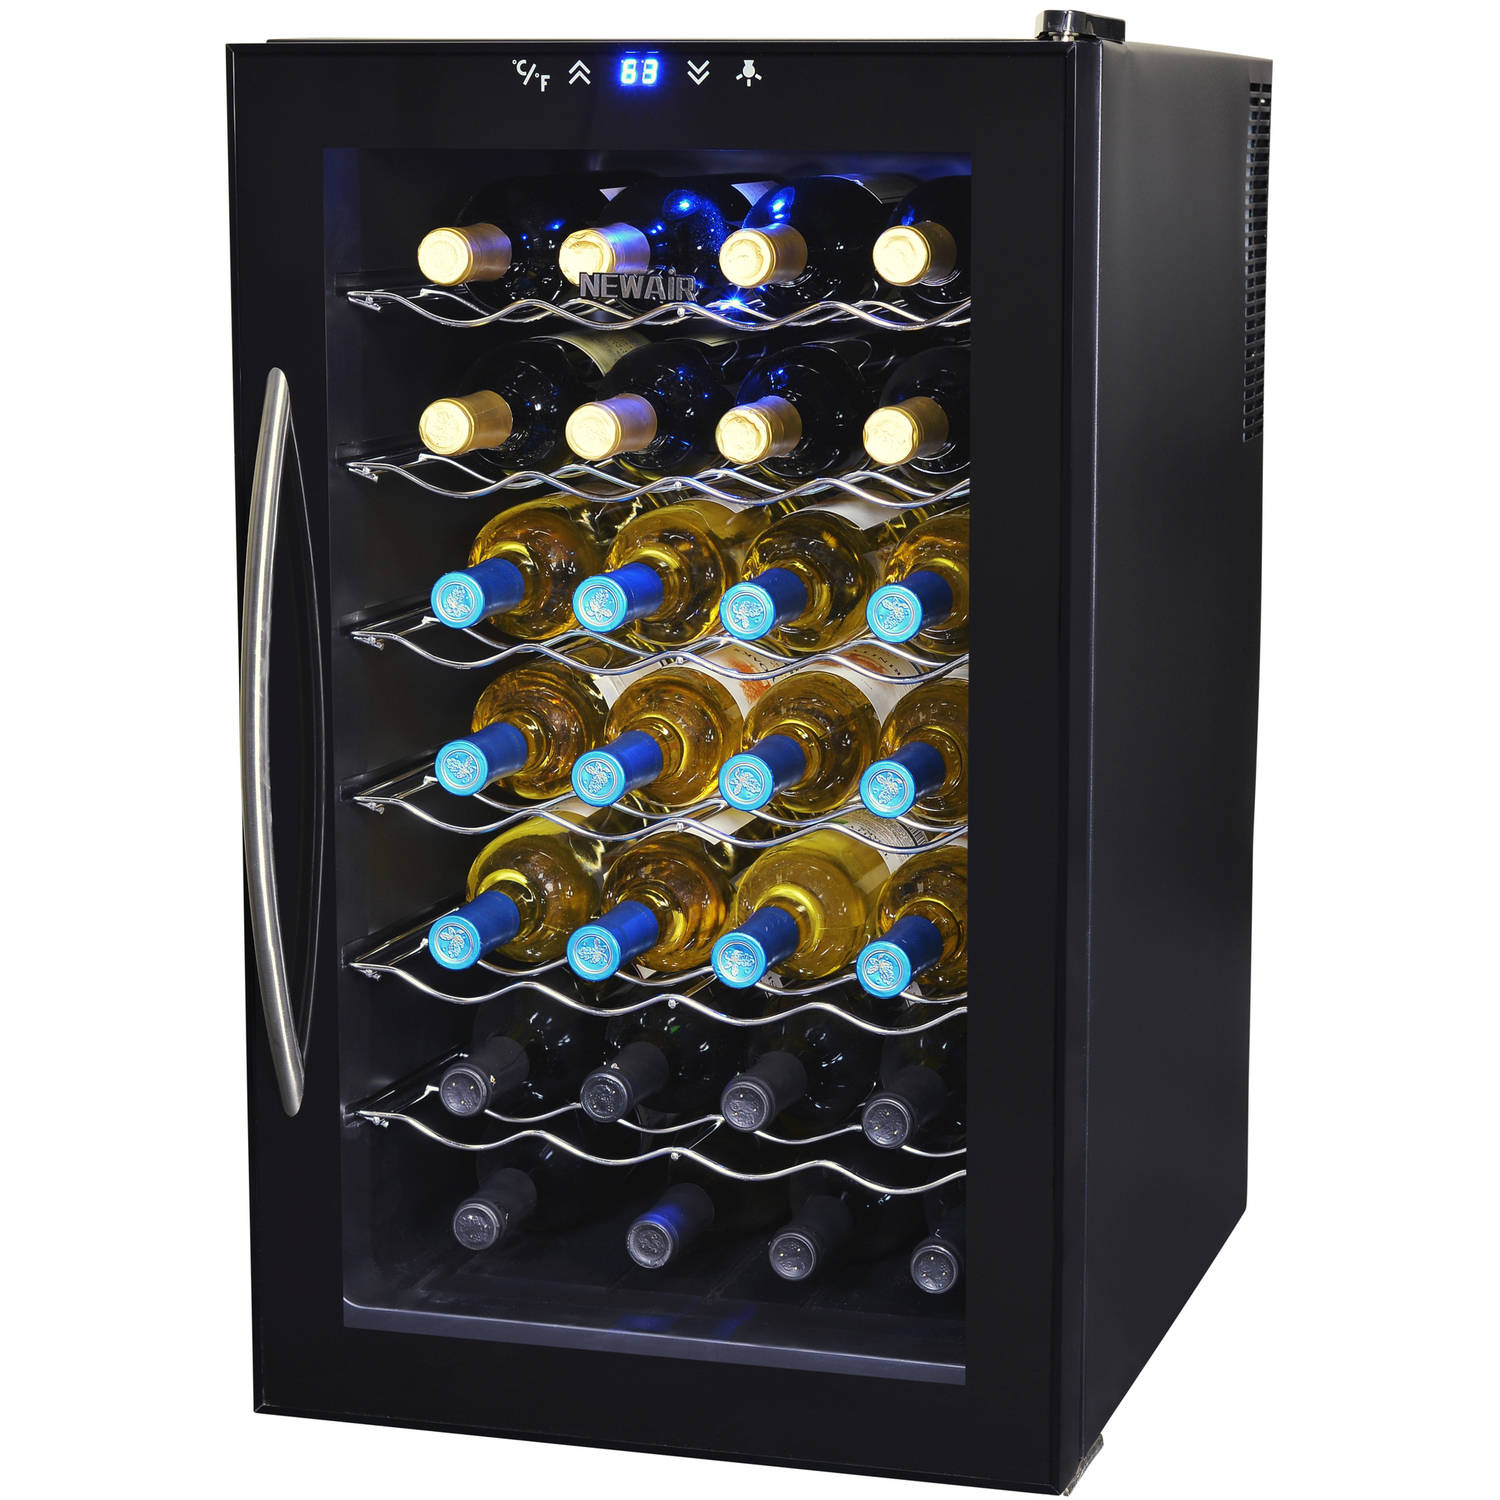 NewAir AW-280E 28-Bottle Thermoelectric Wine Refrigerator, Black